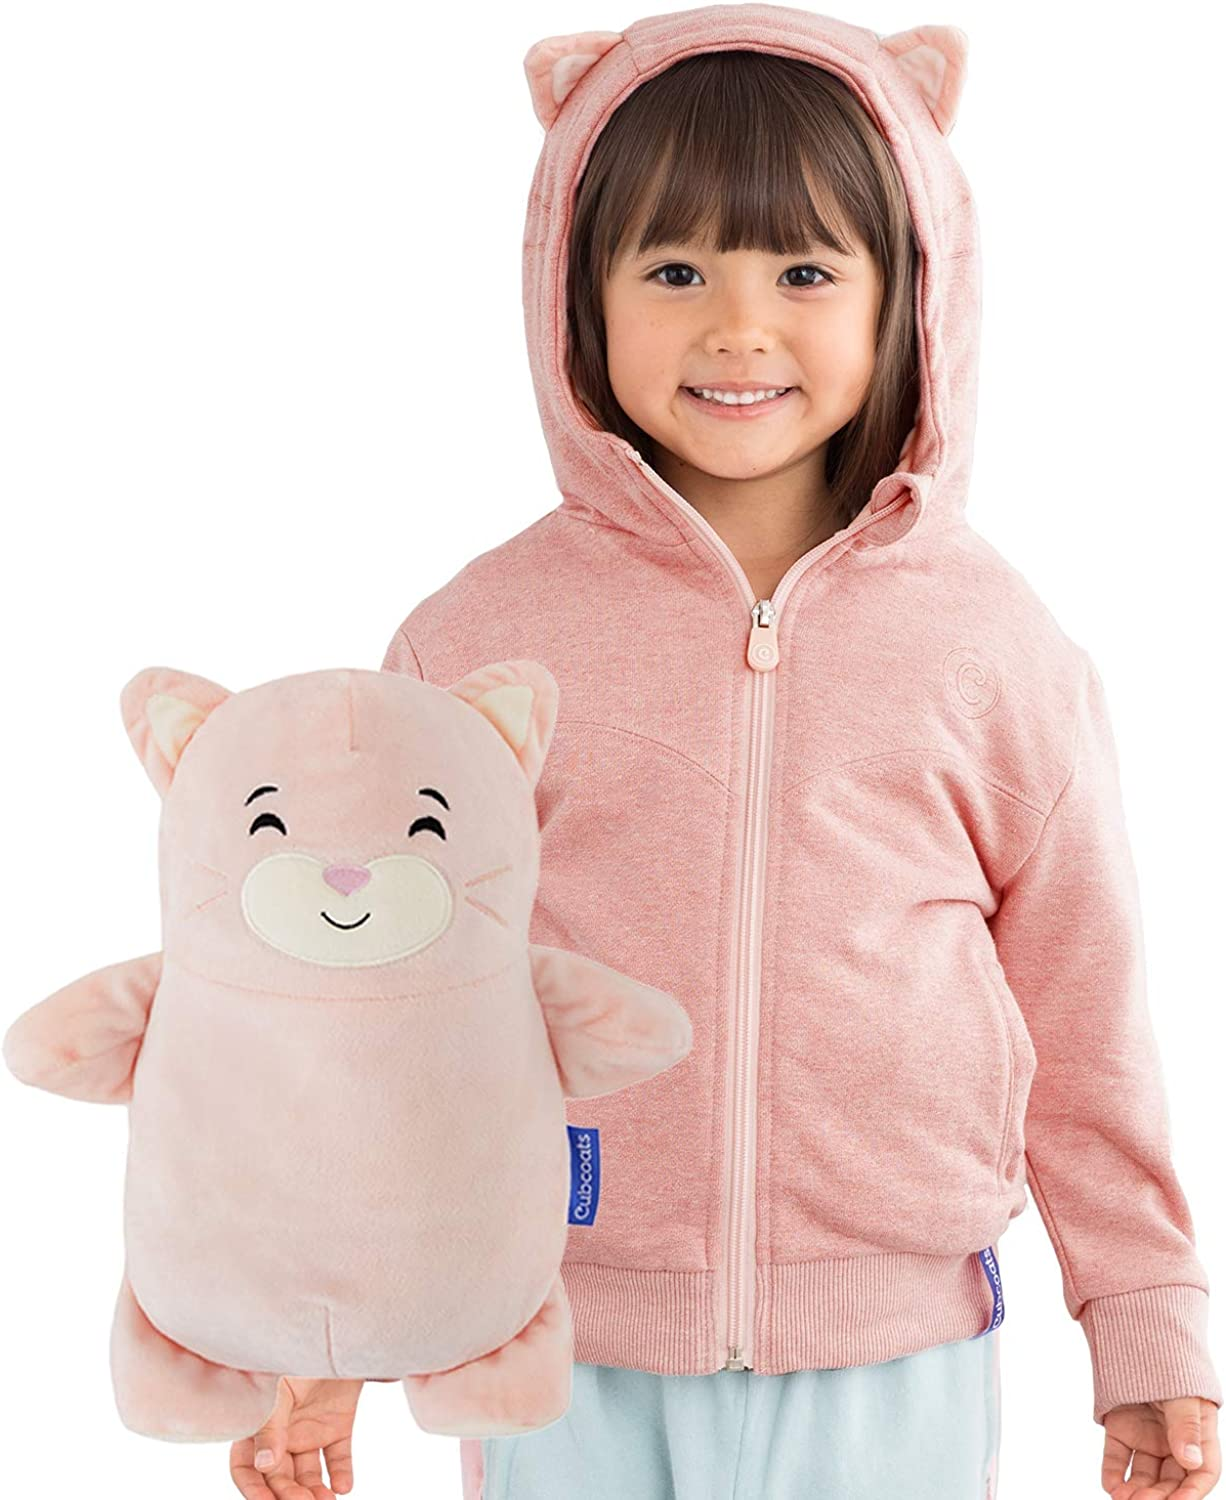 Soft Pink Cubcoats Kali The Kitty 2-in-1 Transforming Hoodie and Soft Plushie